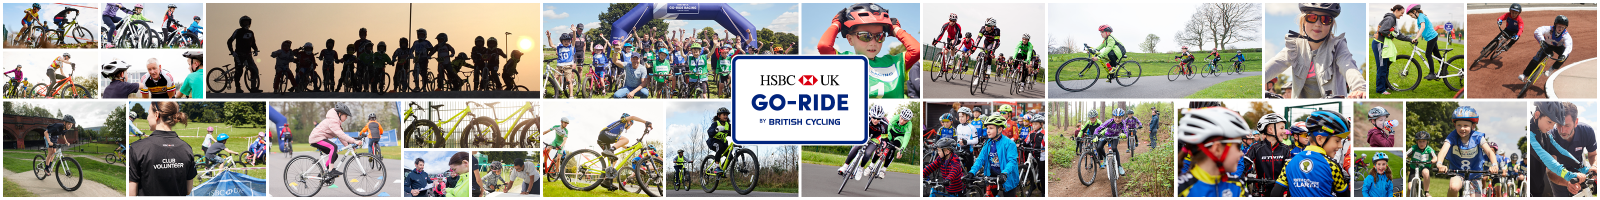 HSBC UK Go-Ride